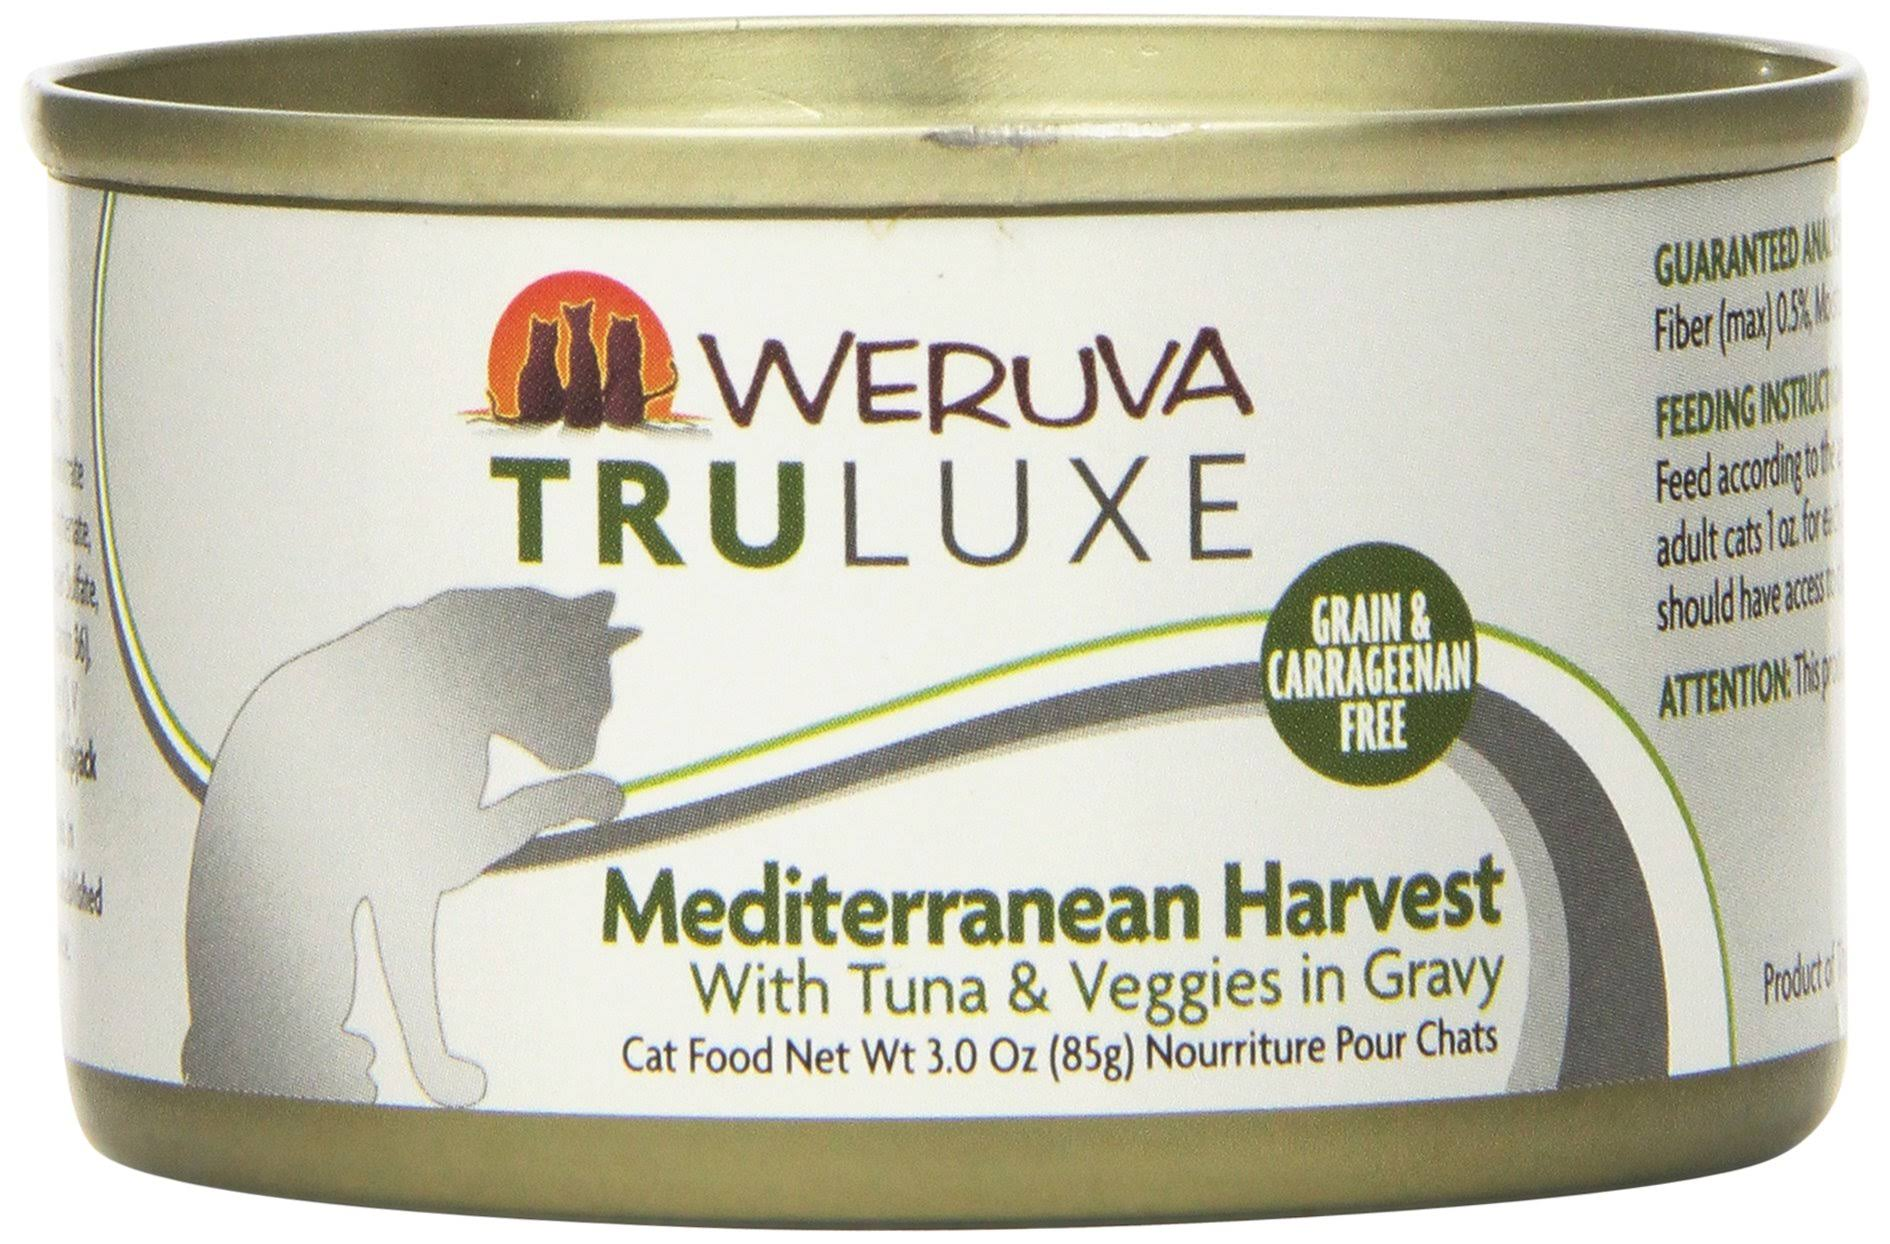 Weruva TRULUXE Canned Cat Food - Mediterranean Harvest 3.0 oz